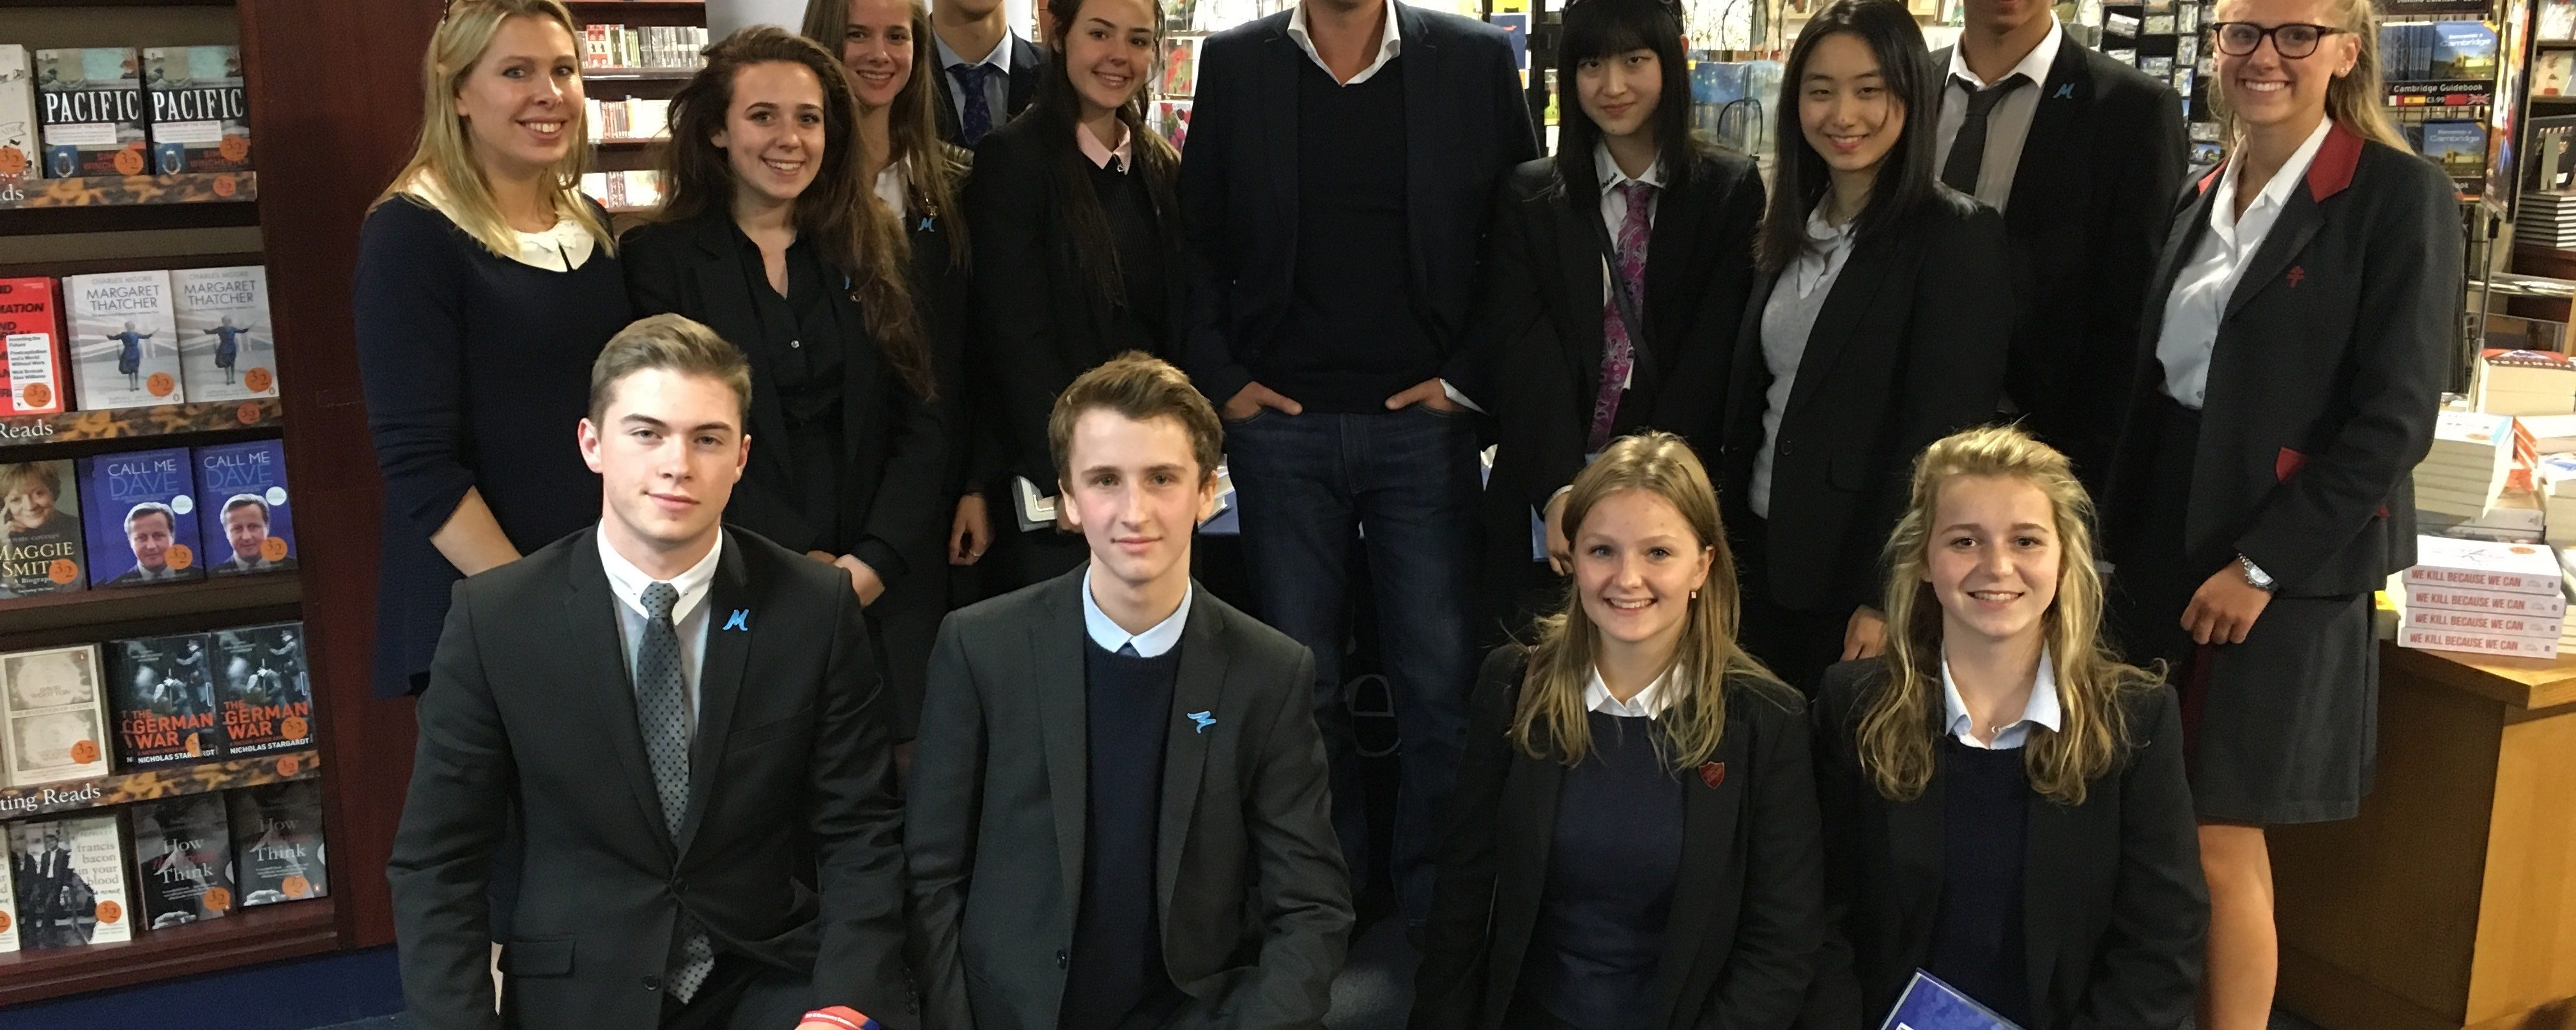 'The Gritty Realities of Ancient Greece', a talk by Michael Scott at New Hall School